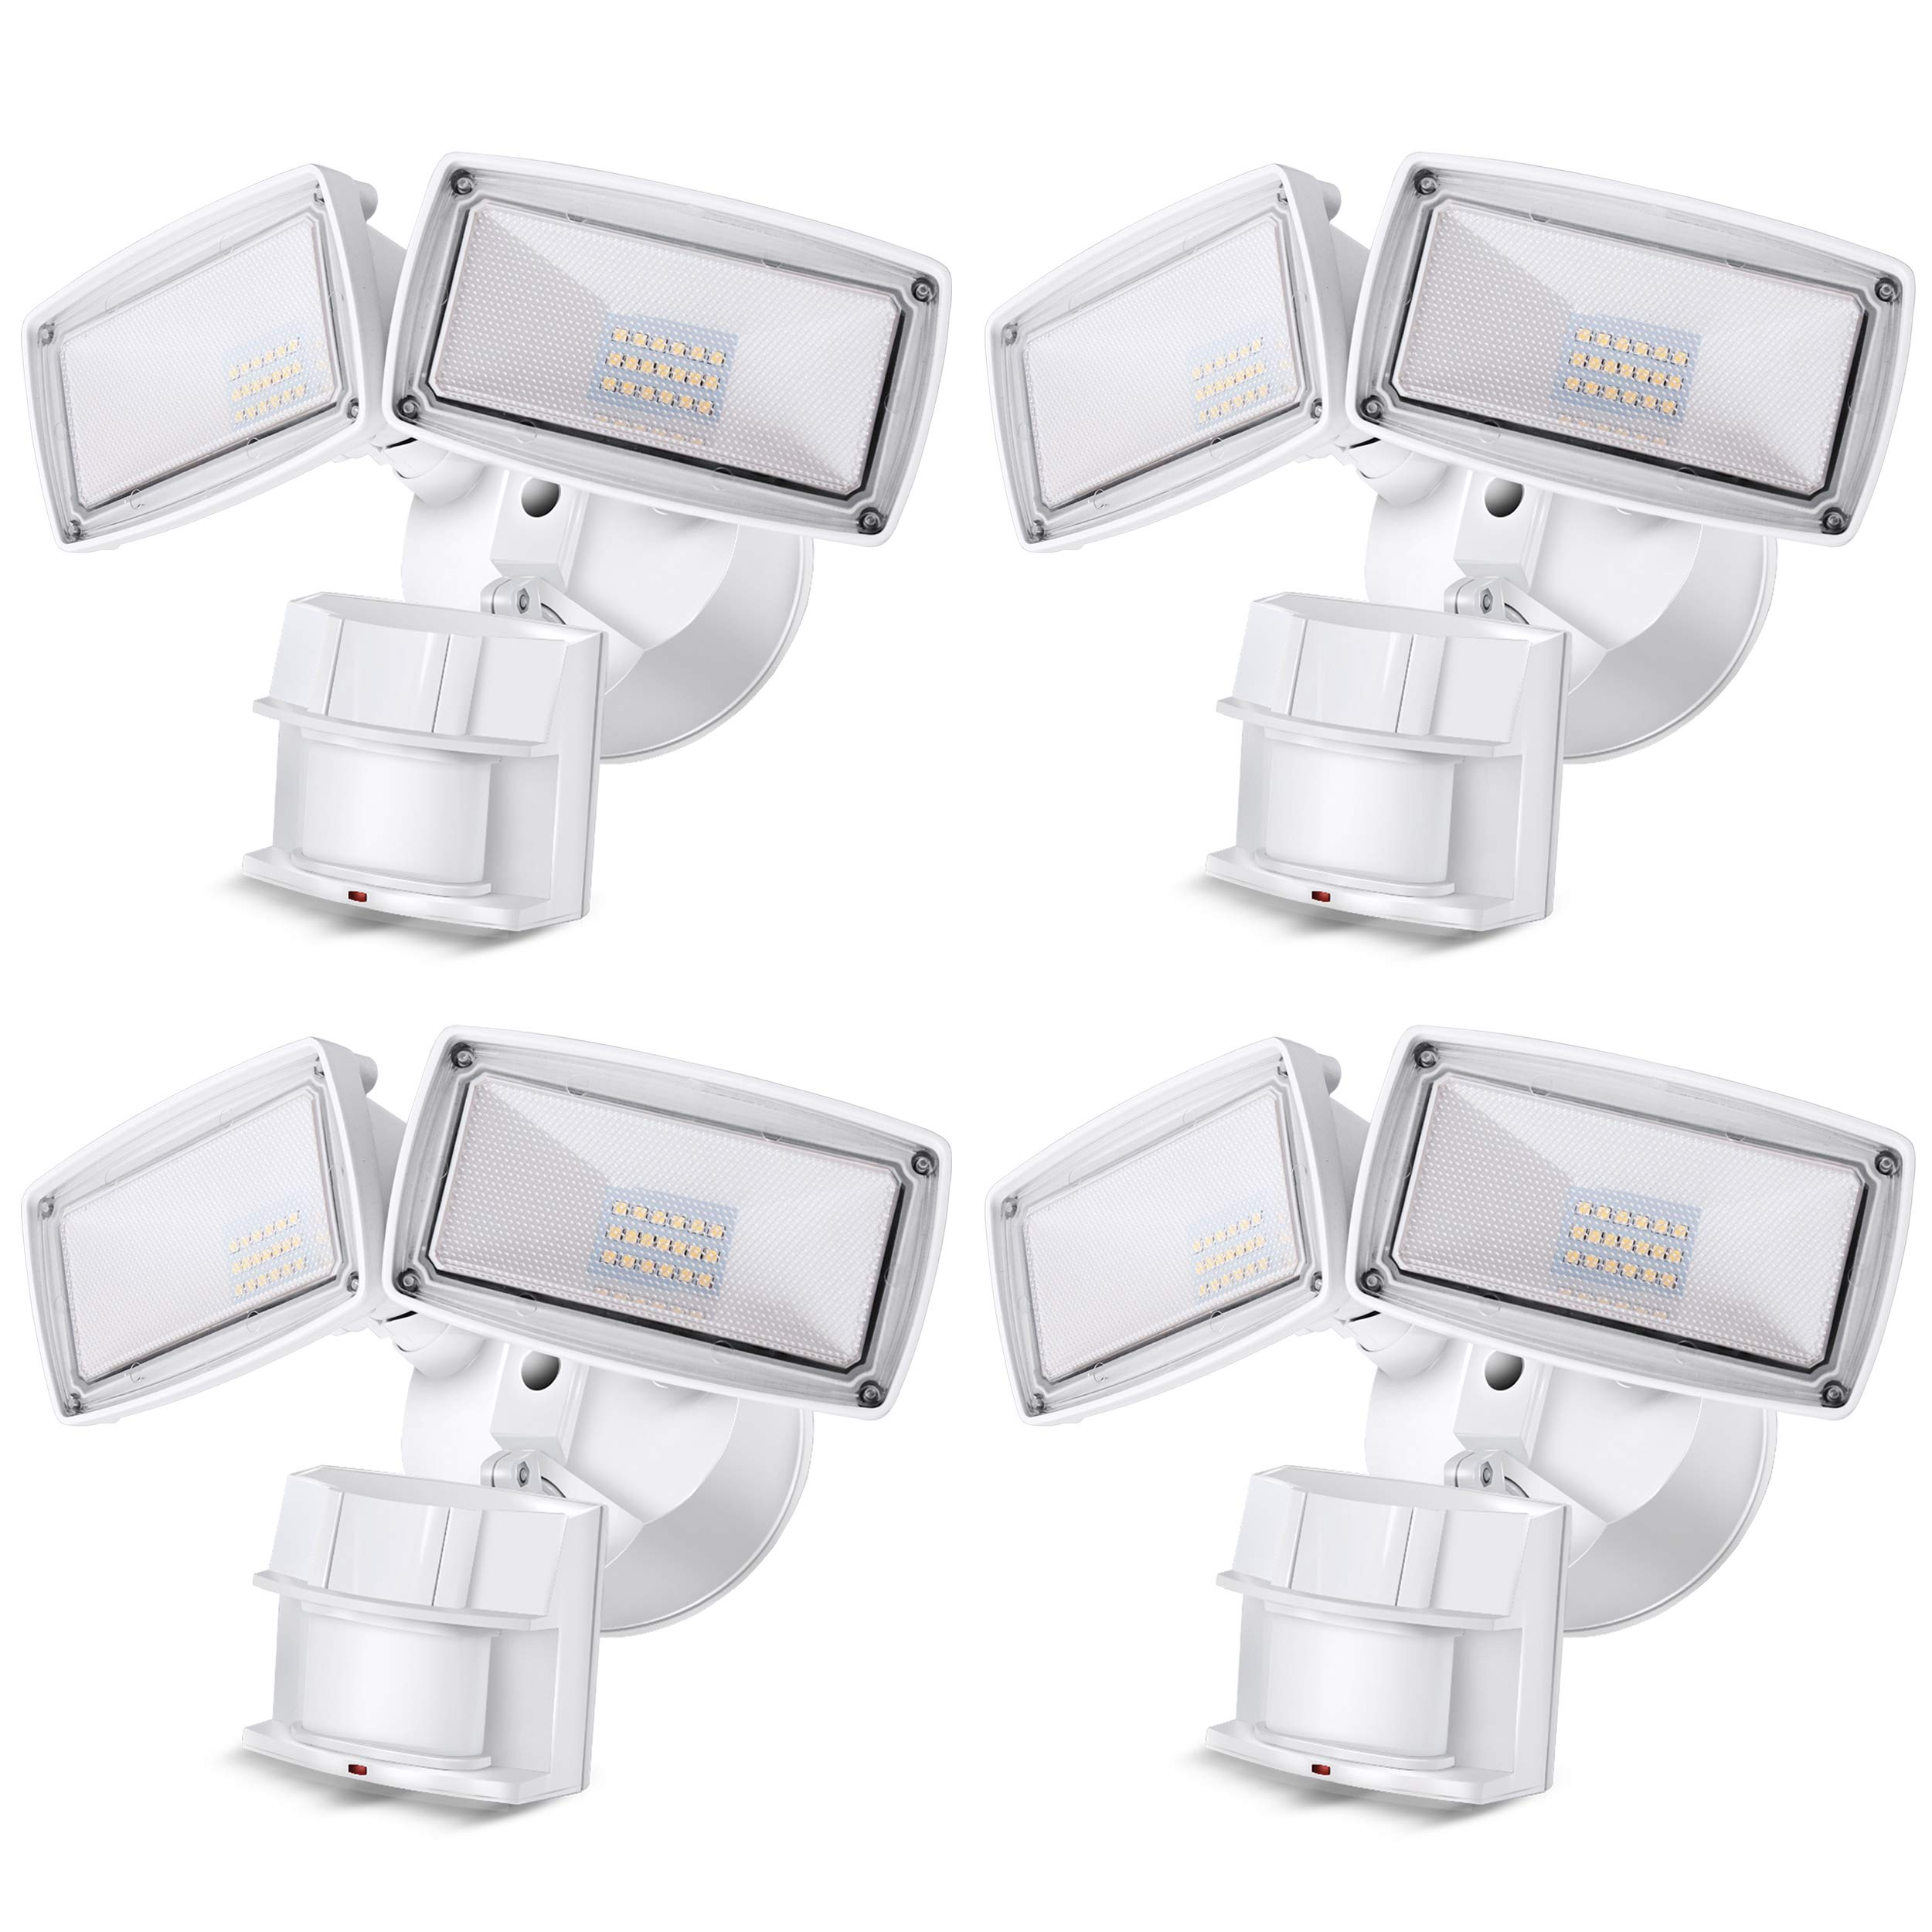 LED Security Light 3000LM, 28W Outdoor Motion Sensor Light, 5500K, IP65 Waterproof, Adjustable Head Flood Light for Entryways, Stairs, Yard and Garage 4 Pack